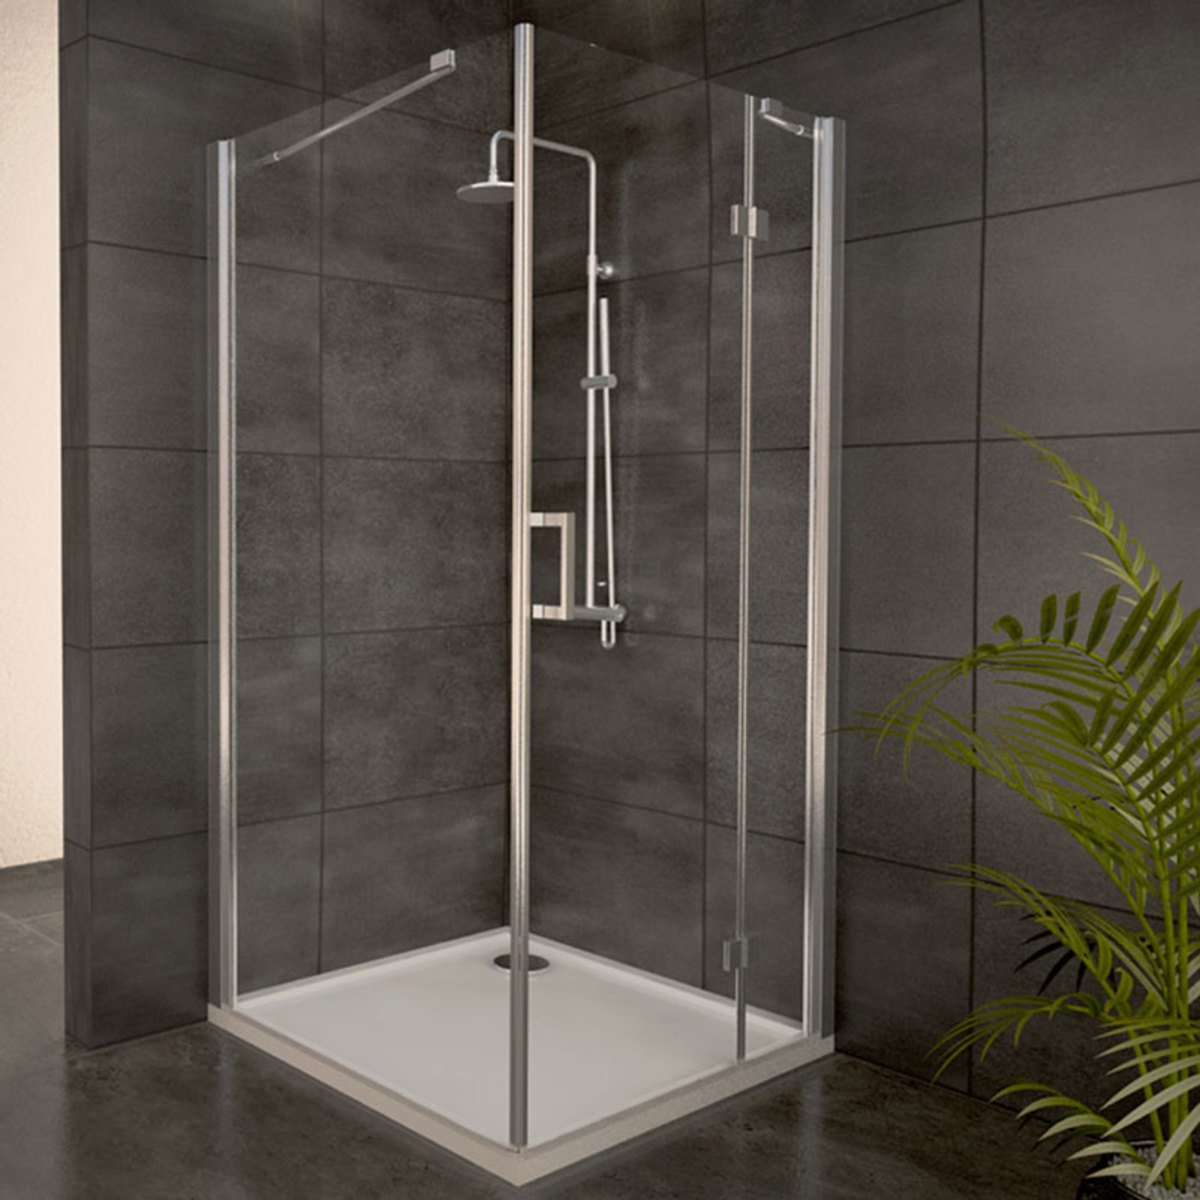 adema glass cabine de douche carr avec 1 porte pivotante 90x90x204cm vitre claire avec receveur. Black Bedroom Furniture Sets. Home Design Ideas